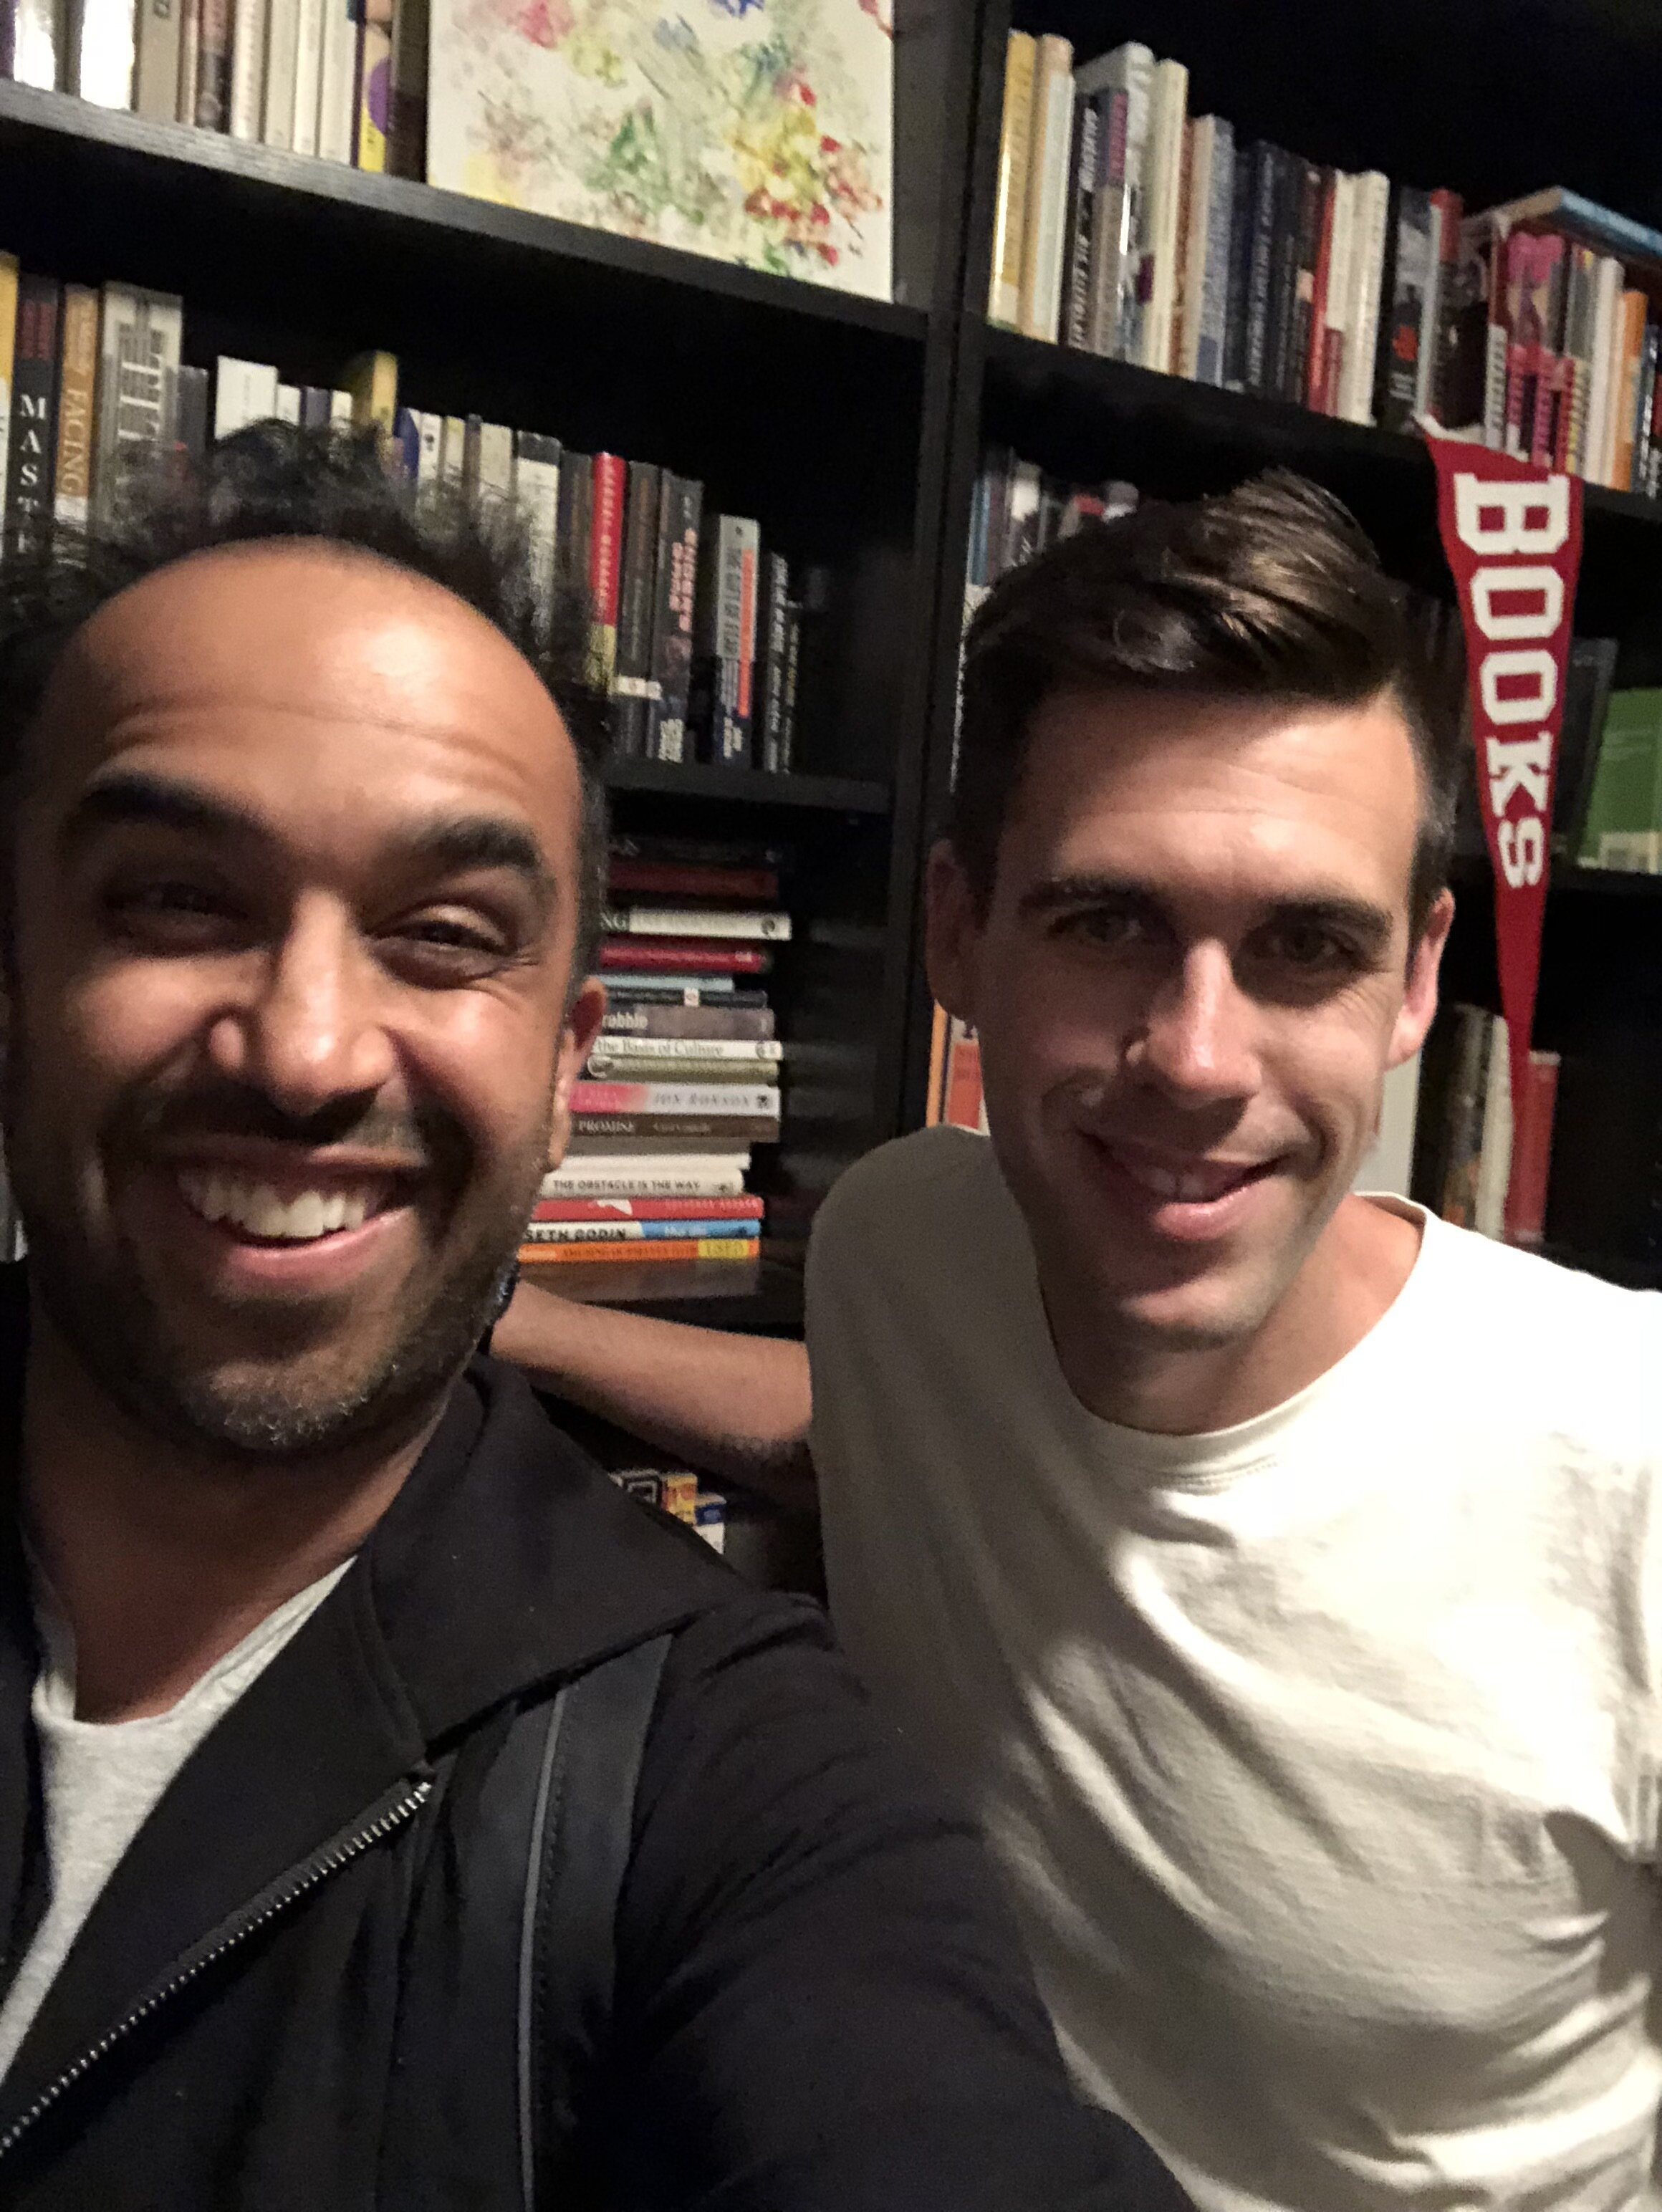 Me and Ryan with … you guessed it, books!